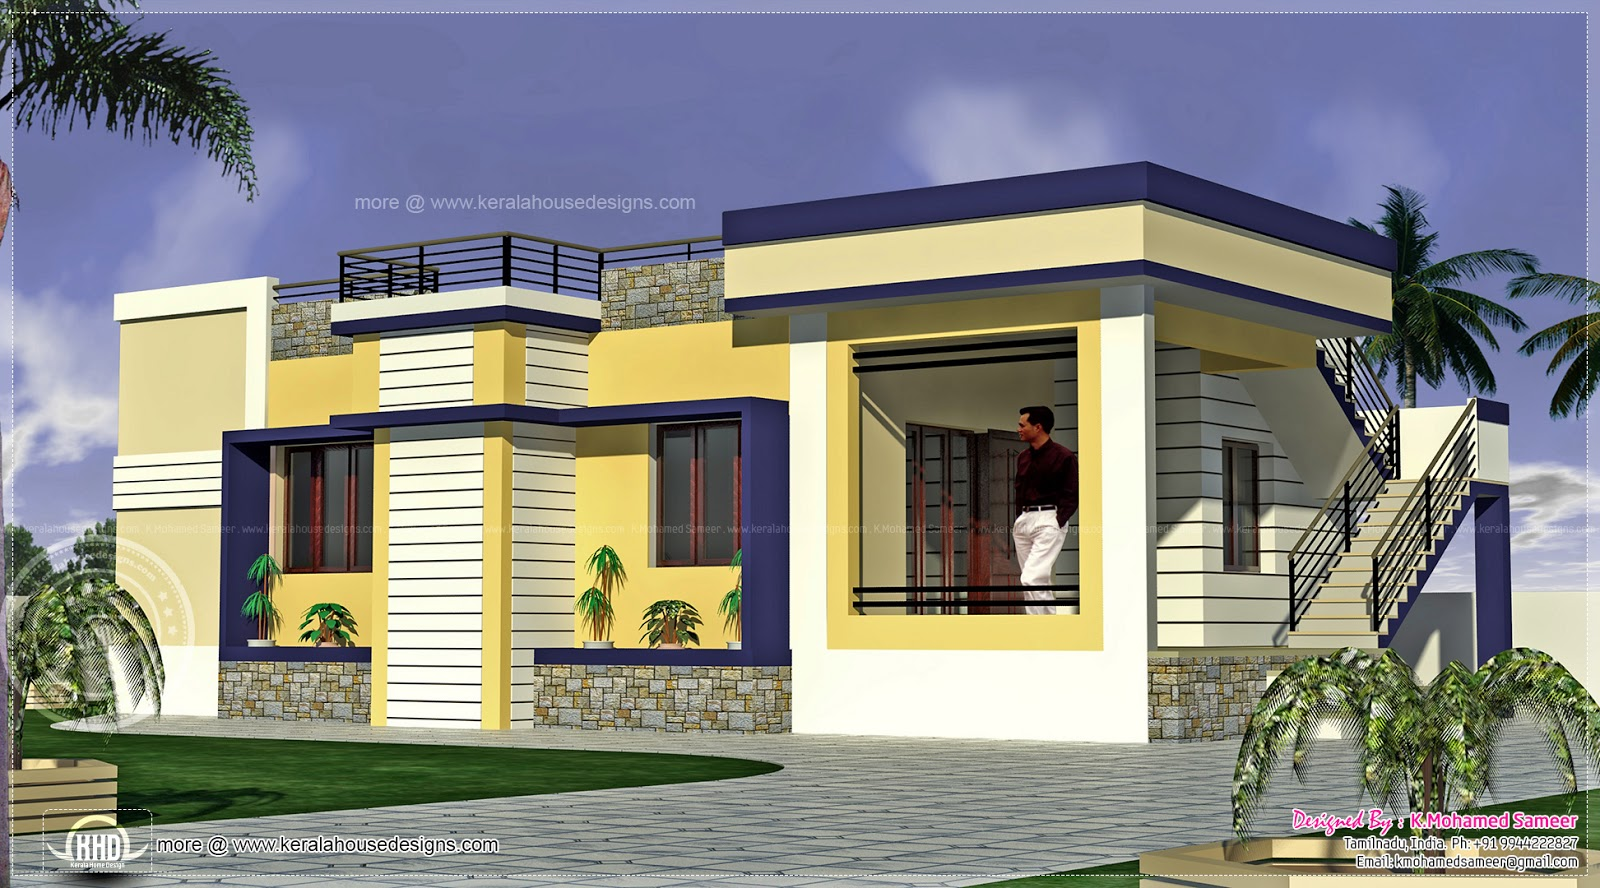 Kerala tamil nadu house plans 1000 sq ft house plans 1000 for Kerala house plans 1000 square feet